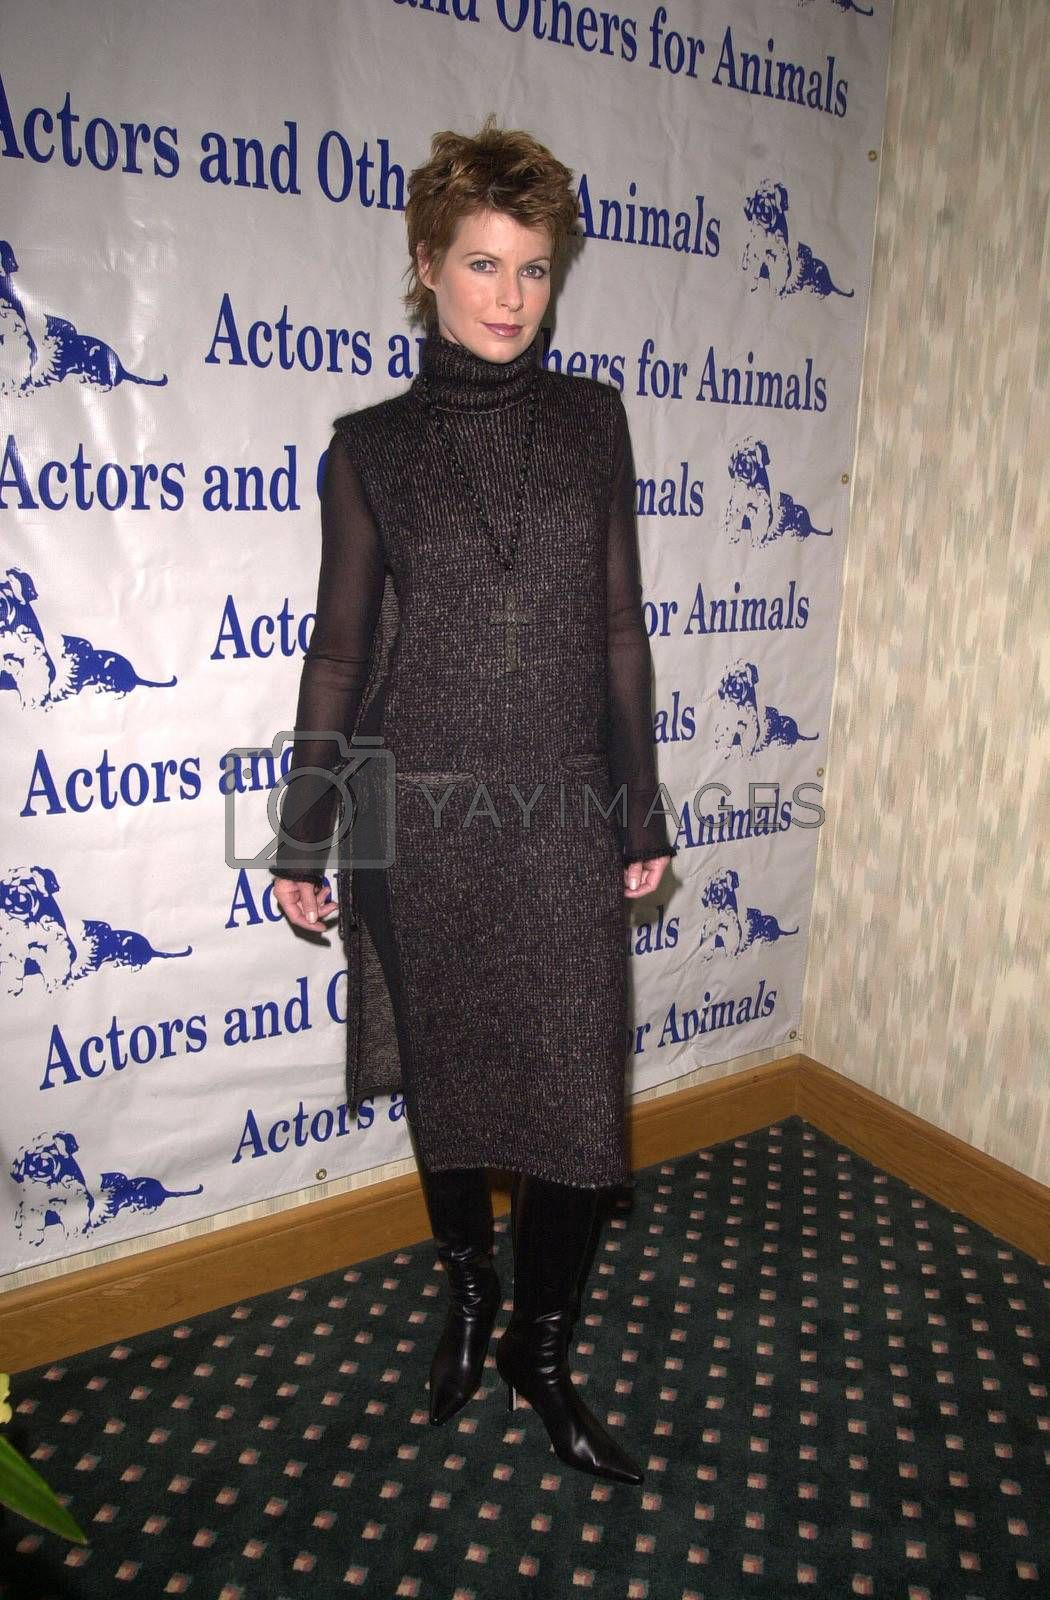 Dana Sparks at the Actors and Others for Animals benefit, Universal City, 10-21-00